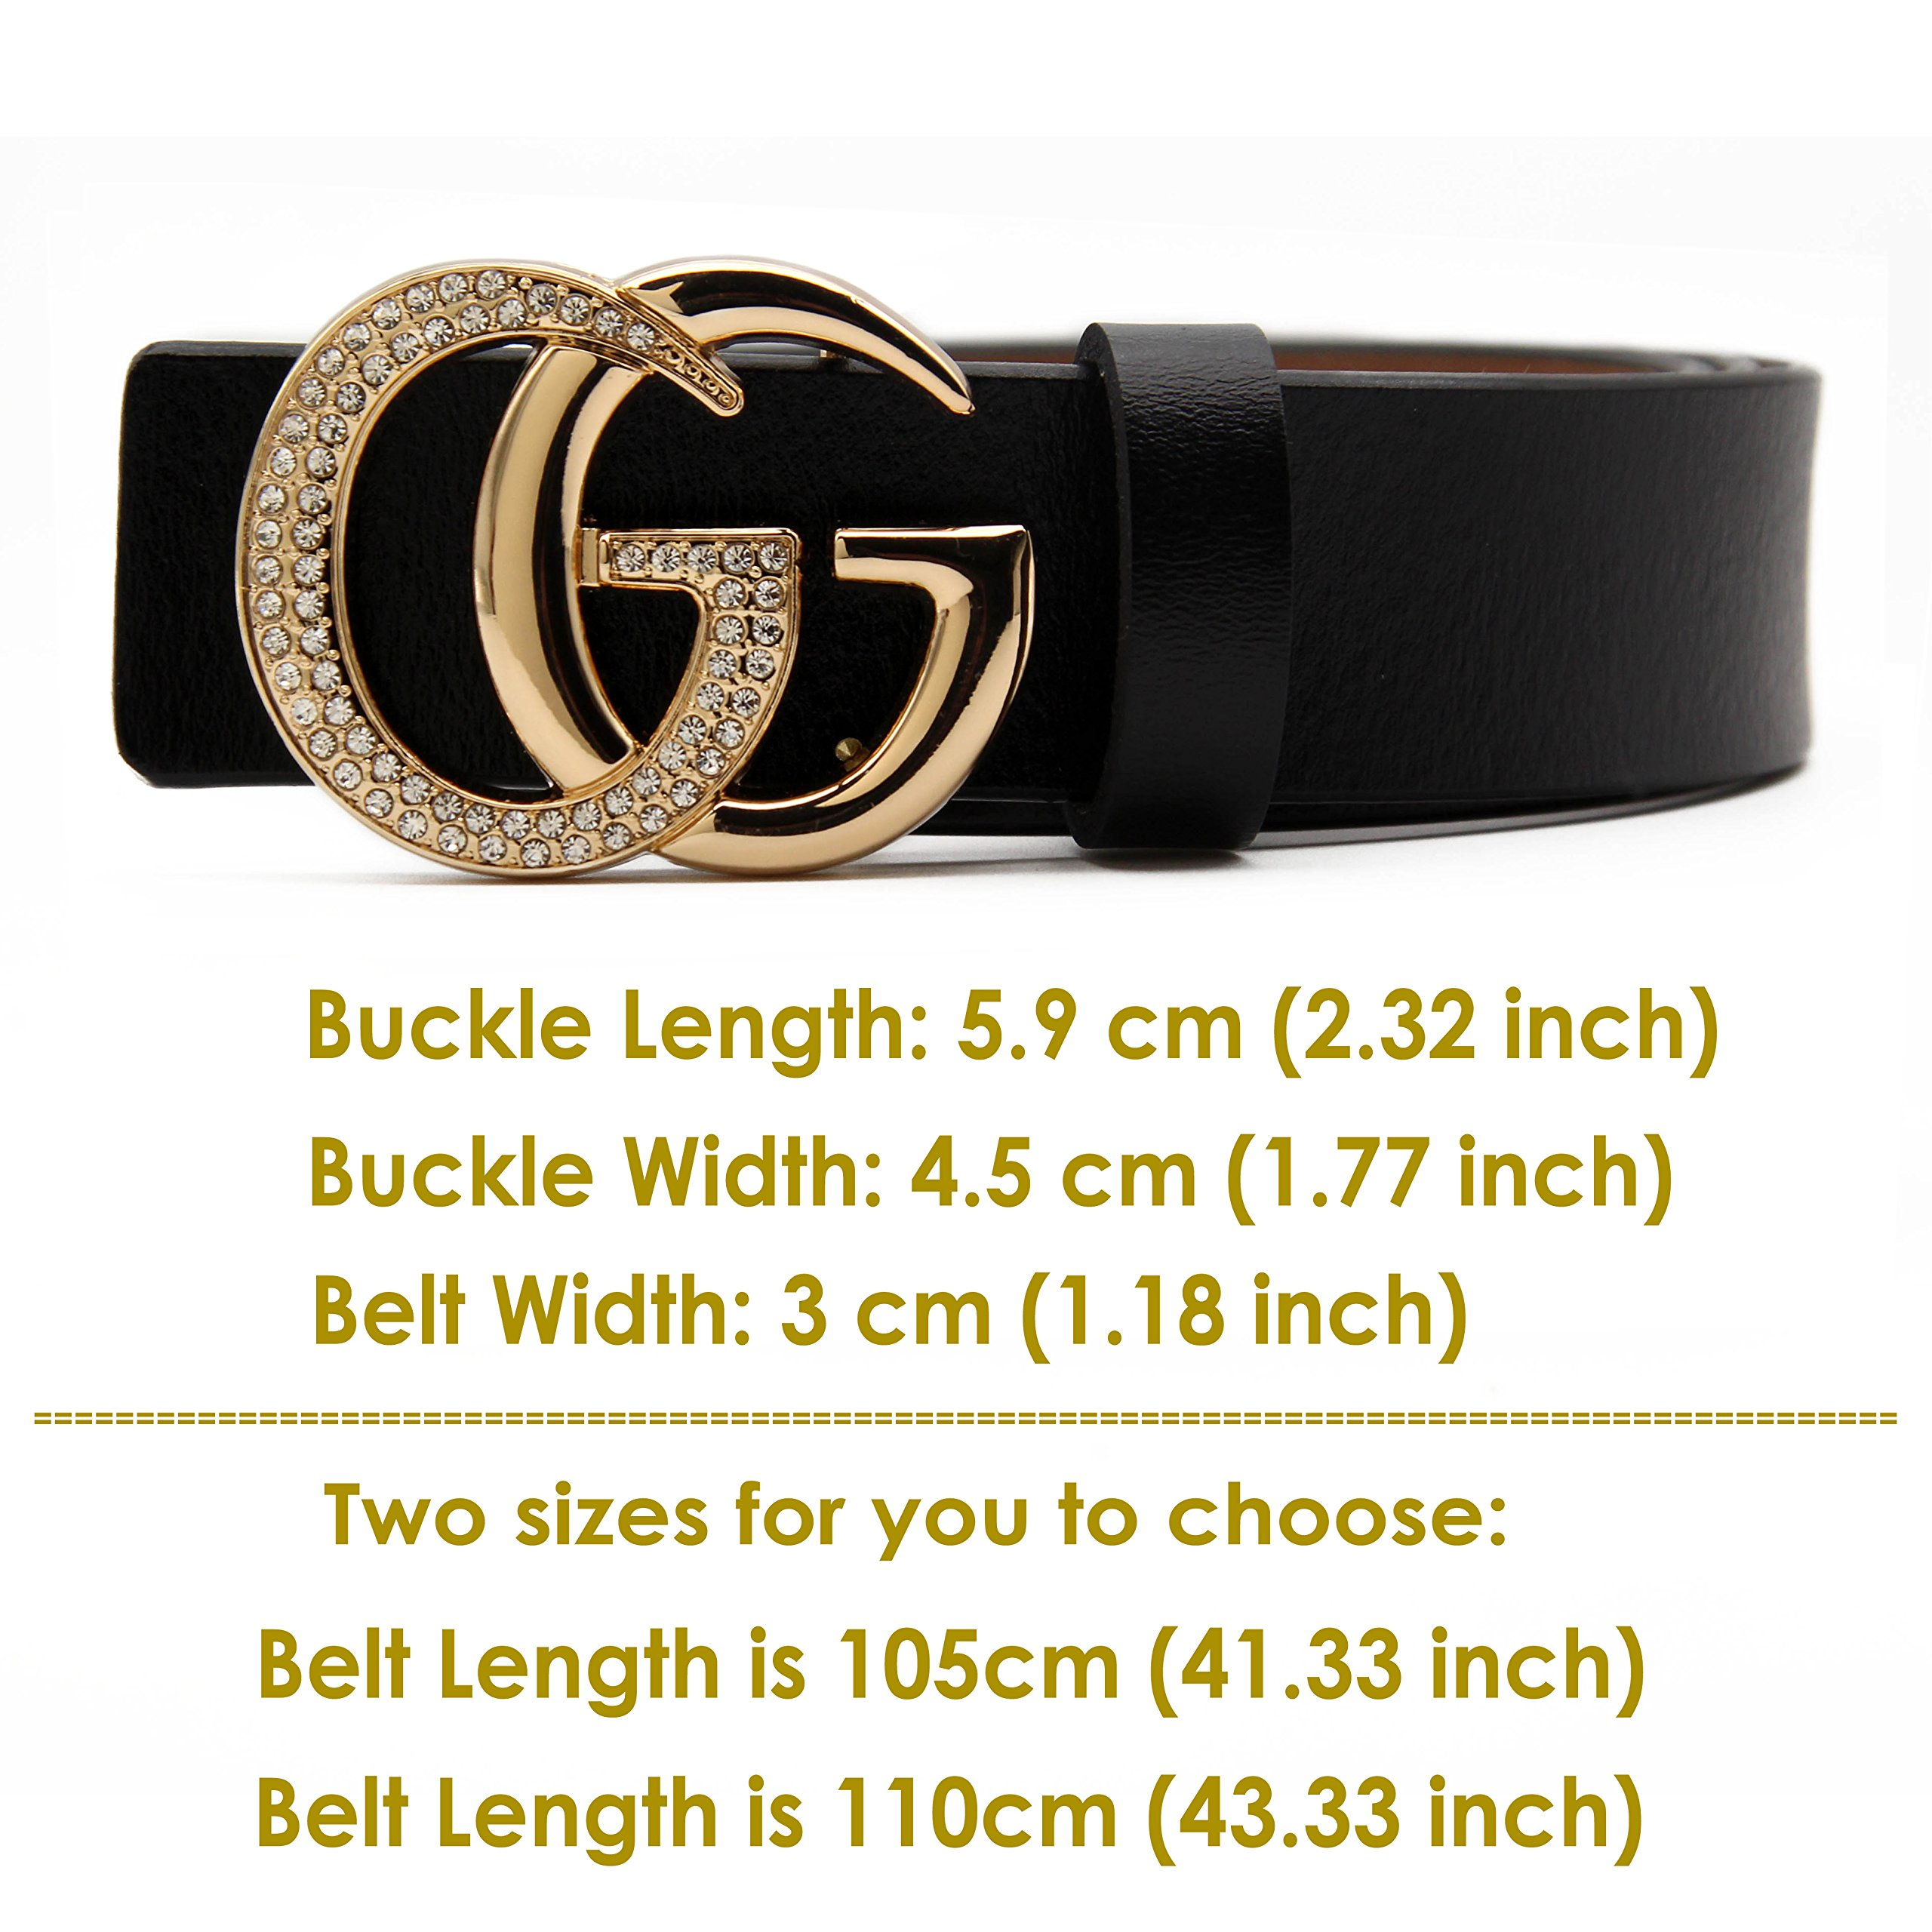 Women's Cowhide Leather Belt Gold Zircon Buckle for Pants Jeans Shorts Ladies Design Genuine Belts for GAGOTE (105cm/41.3'', pants size 26''-30'', Black) by GAGOTE (Image #6)